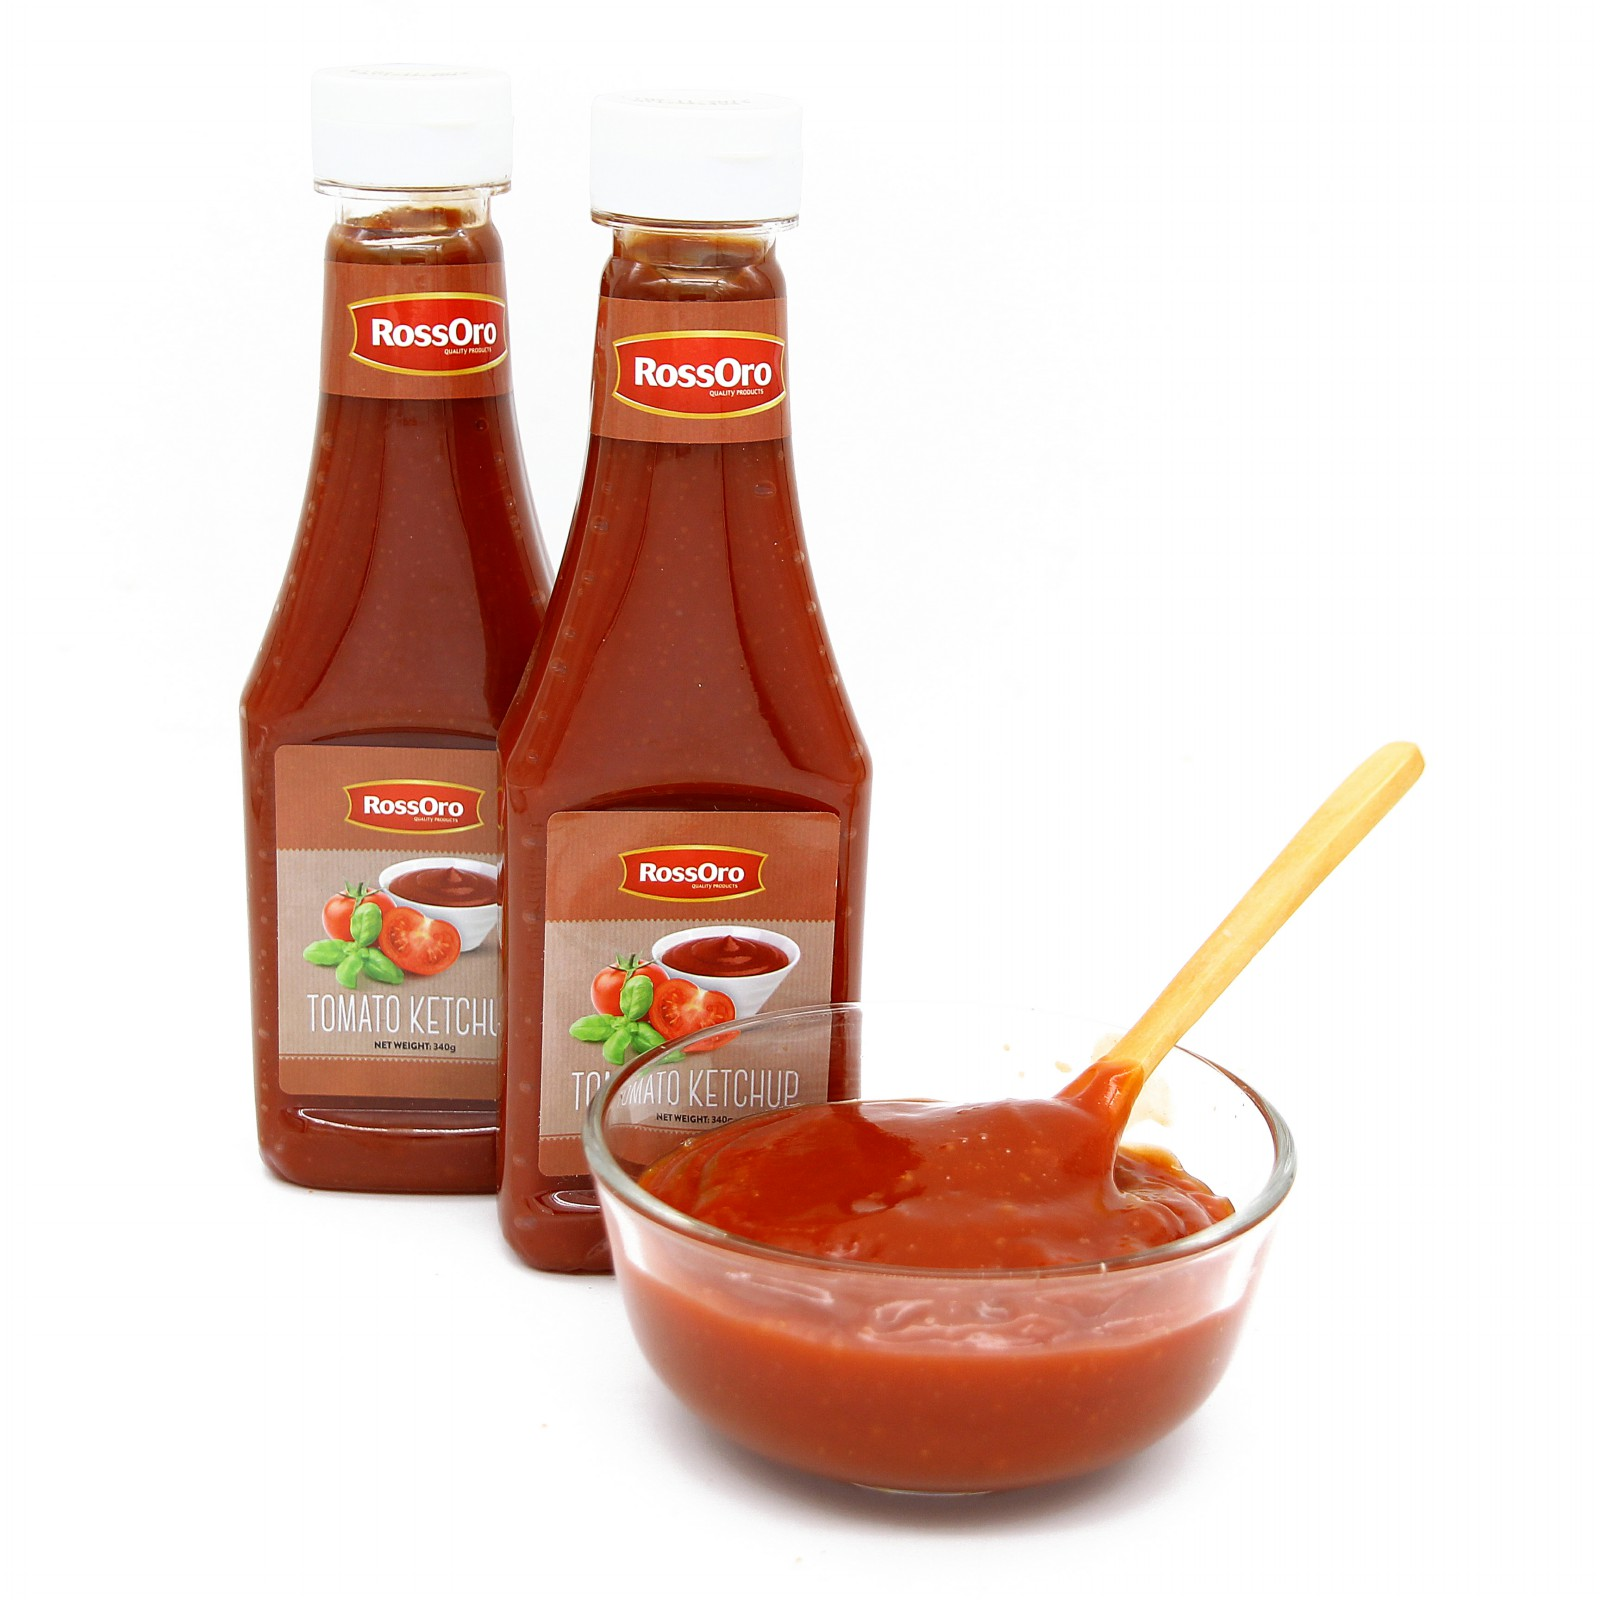 Tomato ketchup in bottle